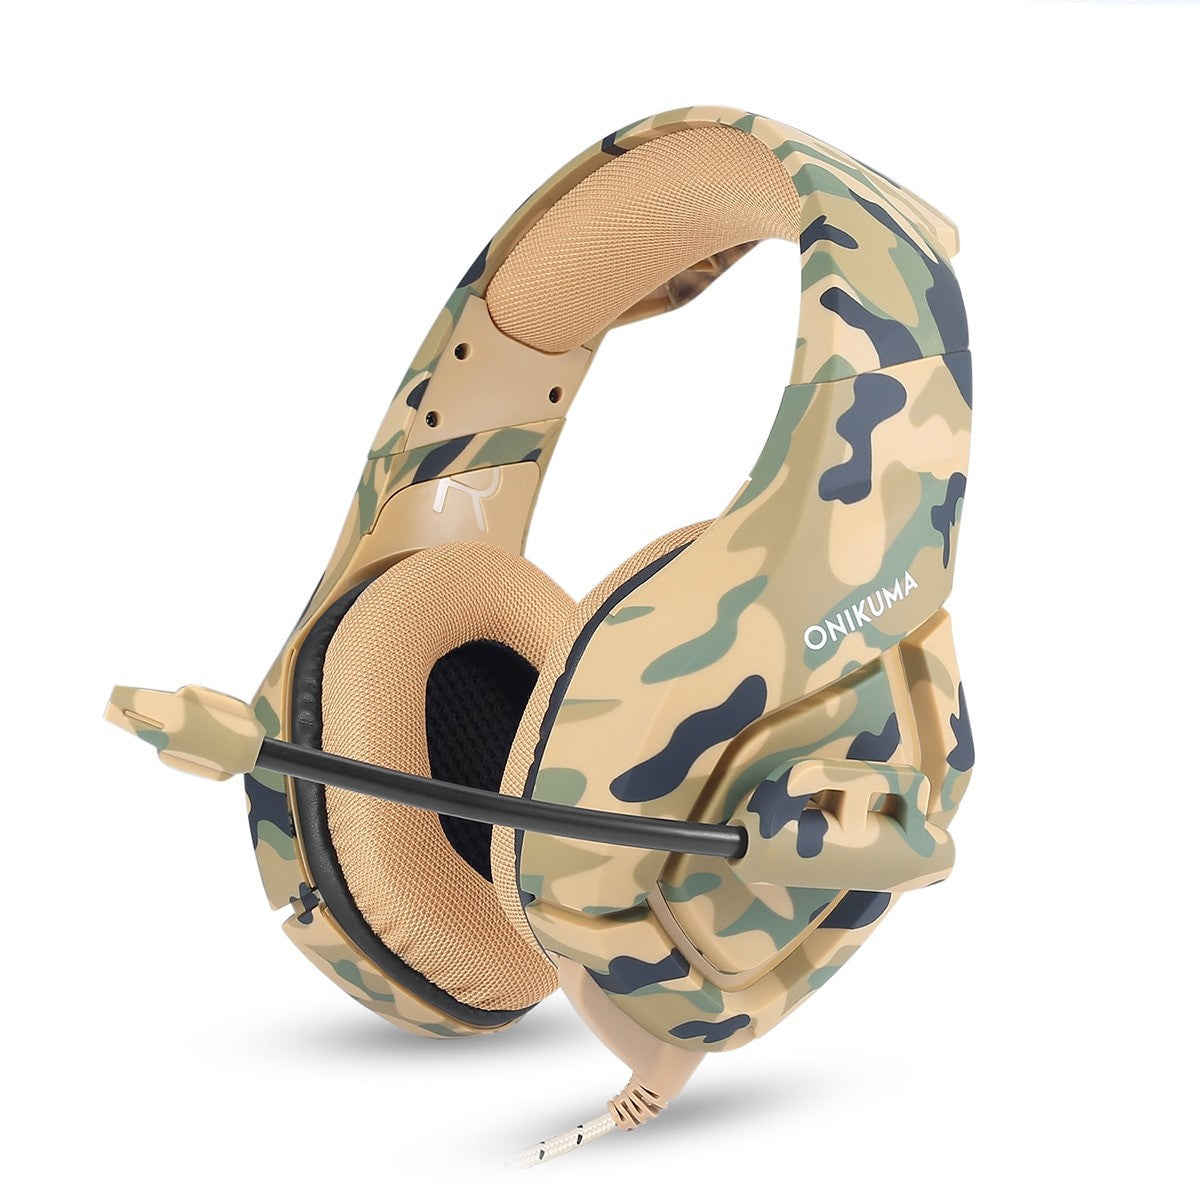 K1 Camouflage PS4 Gaming Headset with Mic Noise Cancelling for pc for Laptop, Mac, Smart Phones, Nintendo Switch, PS4 - gameregion